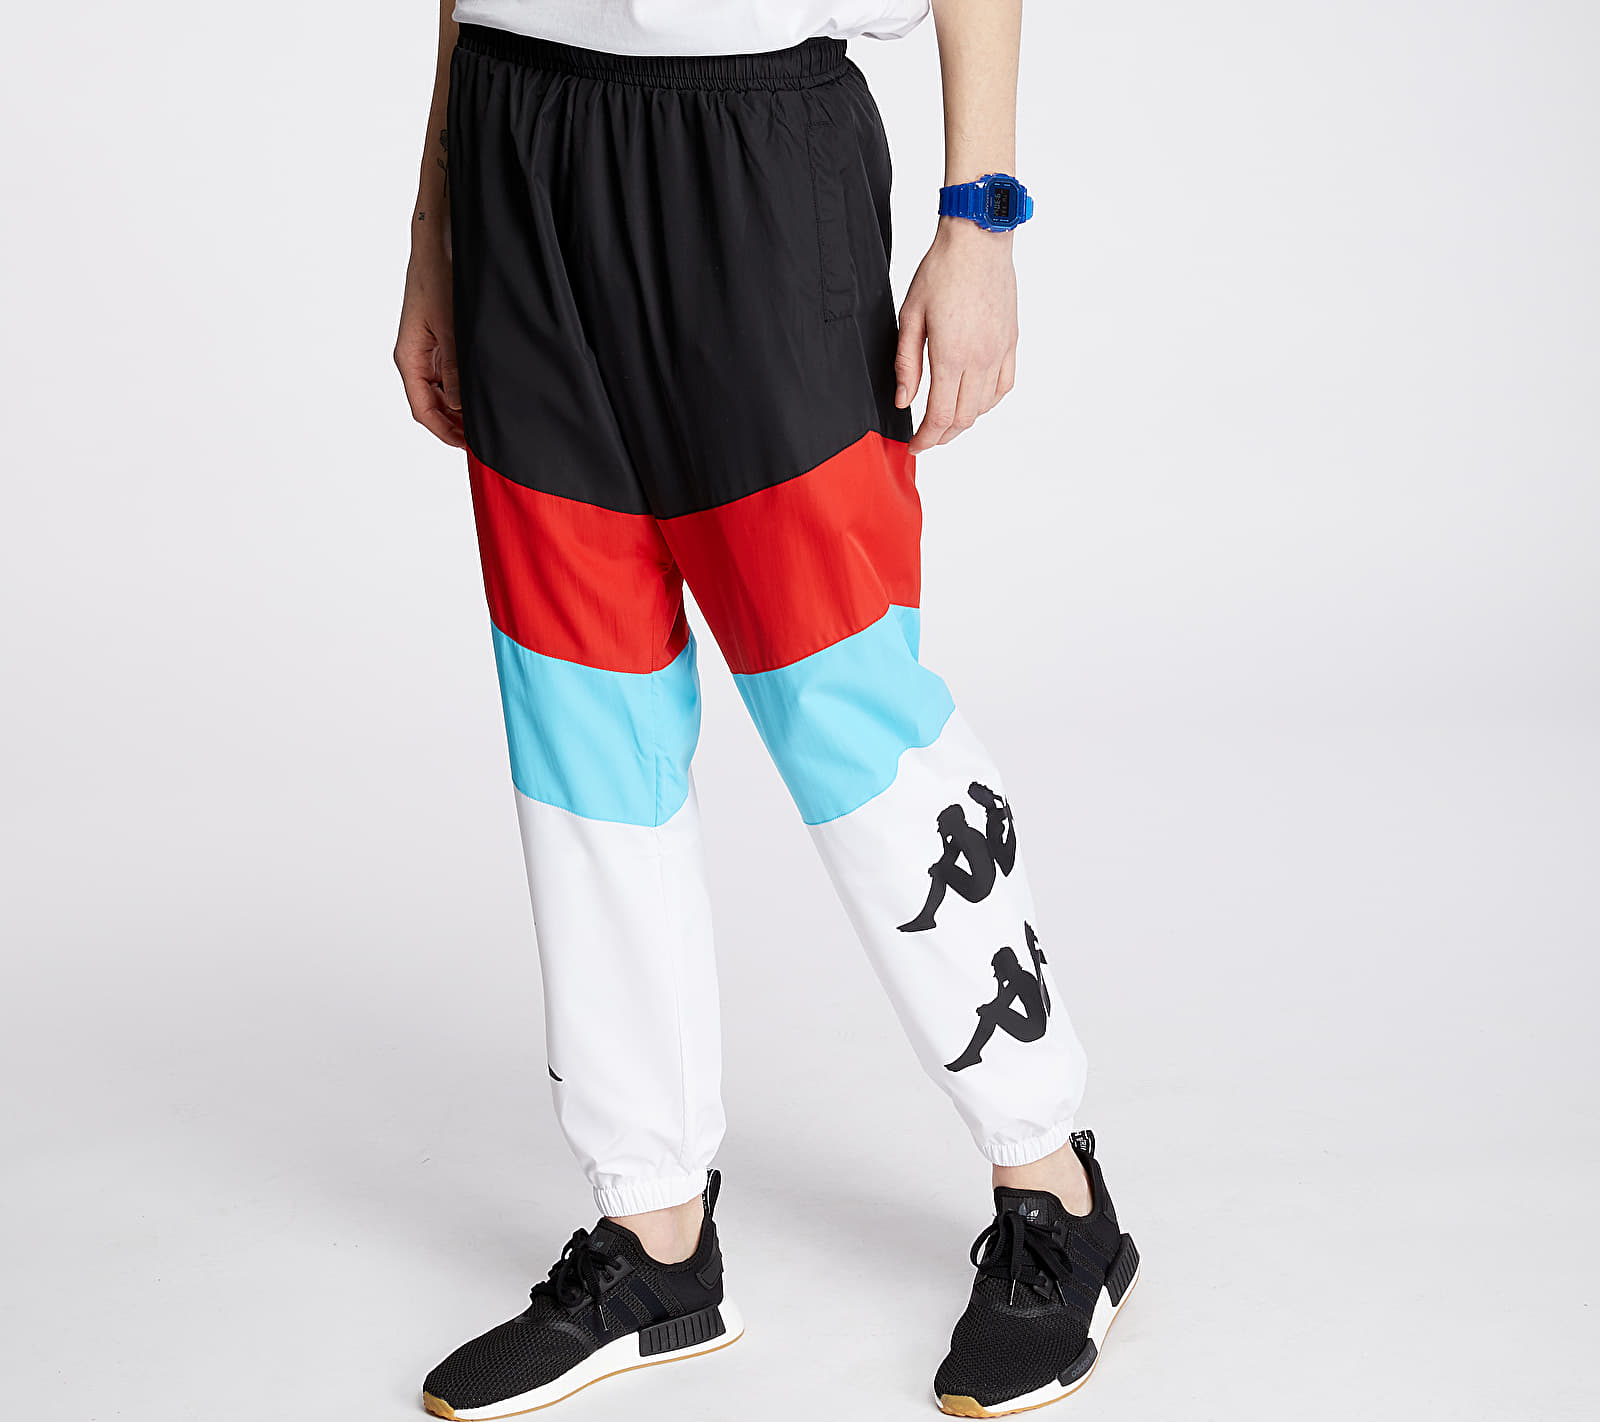 Kappa Authentic Race Clovy Pants Black/ Red/ Turq/ White, Multicolour